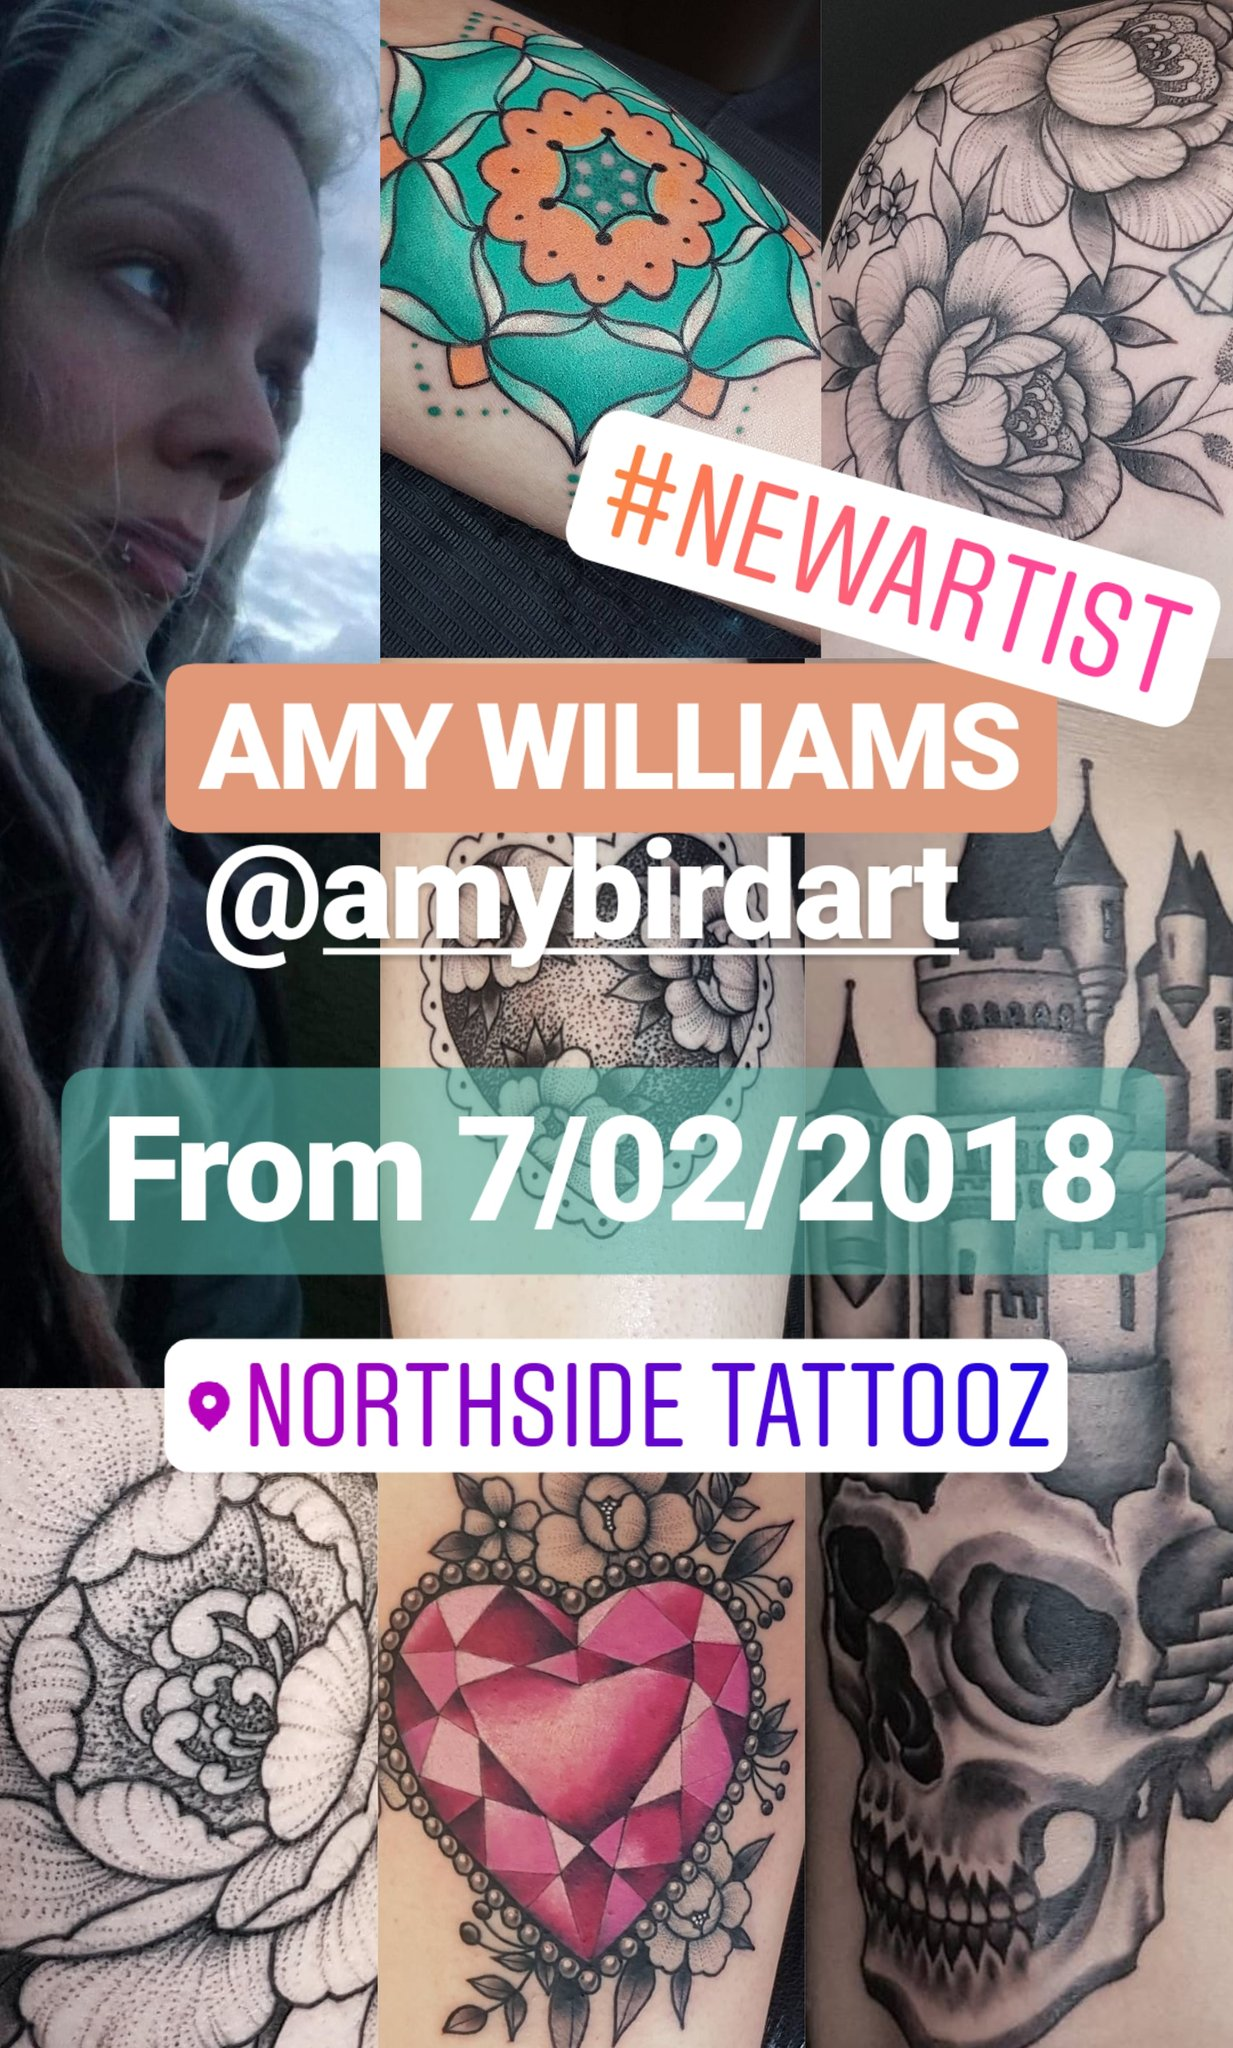 AMY WILLIAMS – New Artist